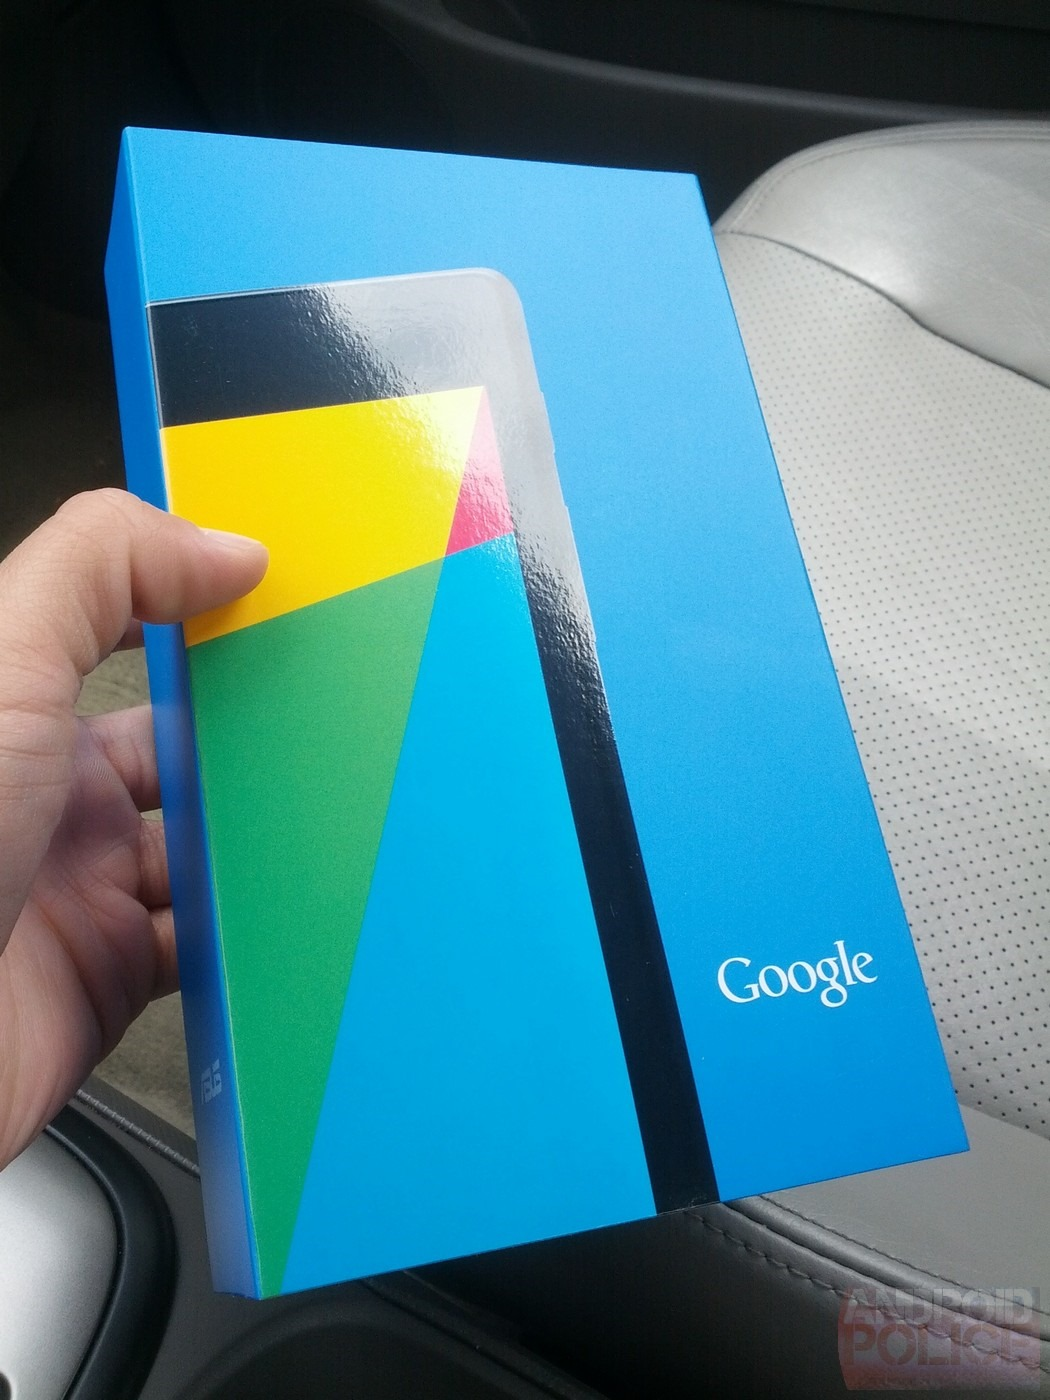 iPad Mini to take a backseat as Google unveils the Nexus 7′s upgraded version